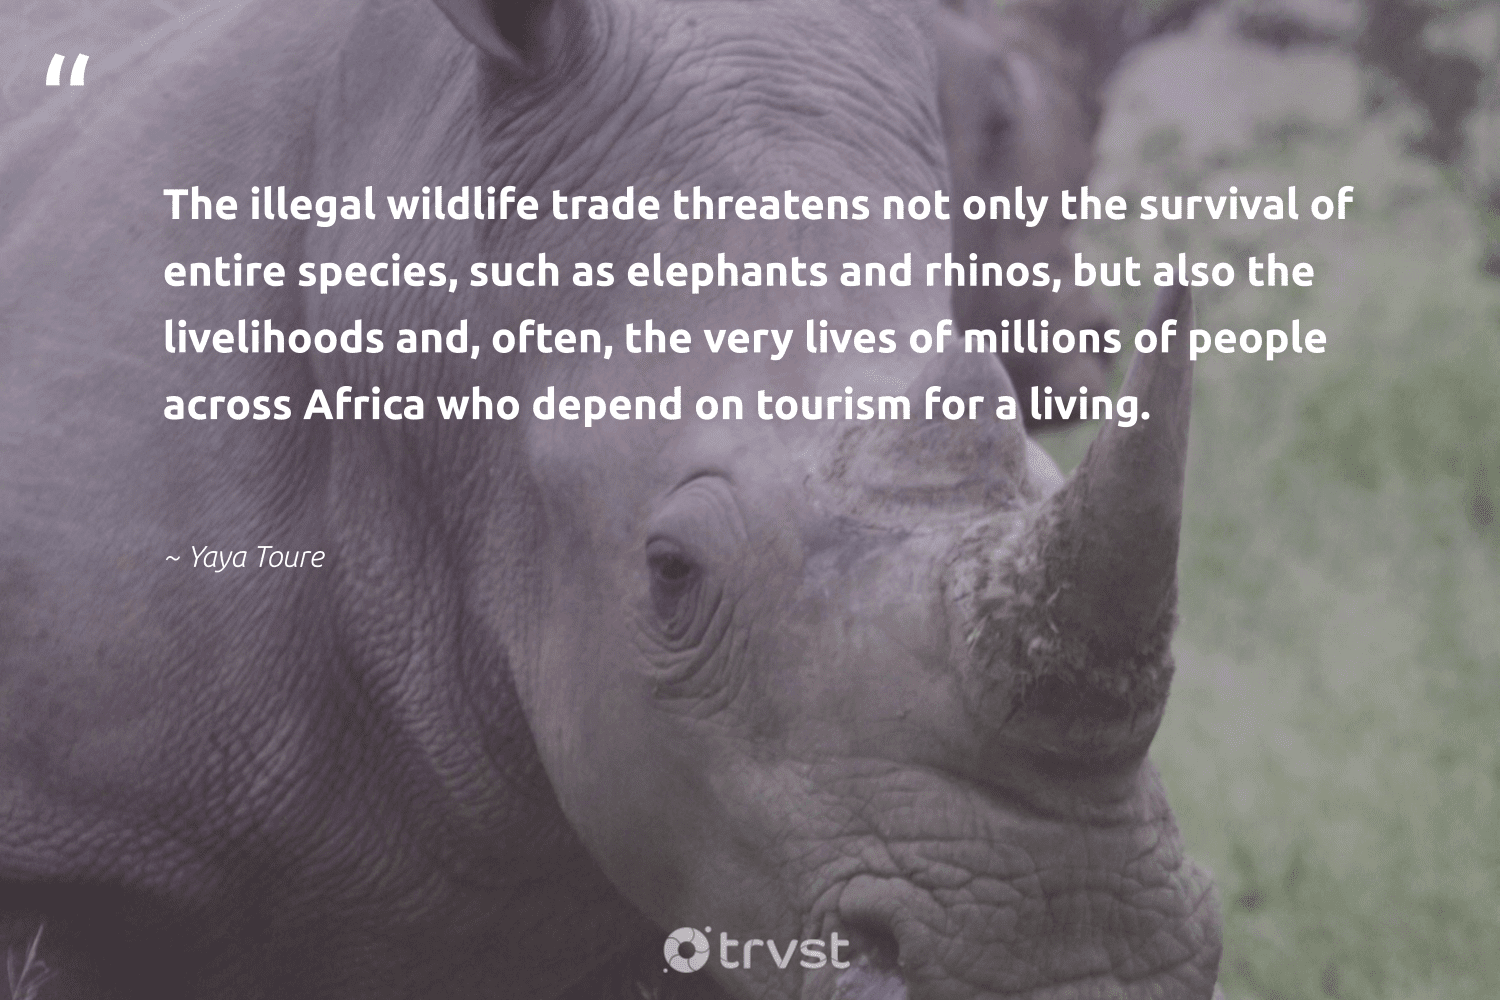 """""""The illegal wildlife trade threatens not only the survival of entire species, such as elephants and rhinos, but also the livelihoods and, often, the very lives of millions of people across Africa who depend on tourism for a living.""""  - Yaya Toure #trvst #quotes #africa #wildlife #elephants #people #animal #protectnature #natural #bethechange #animals #biodiversity"""